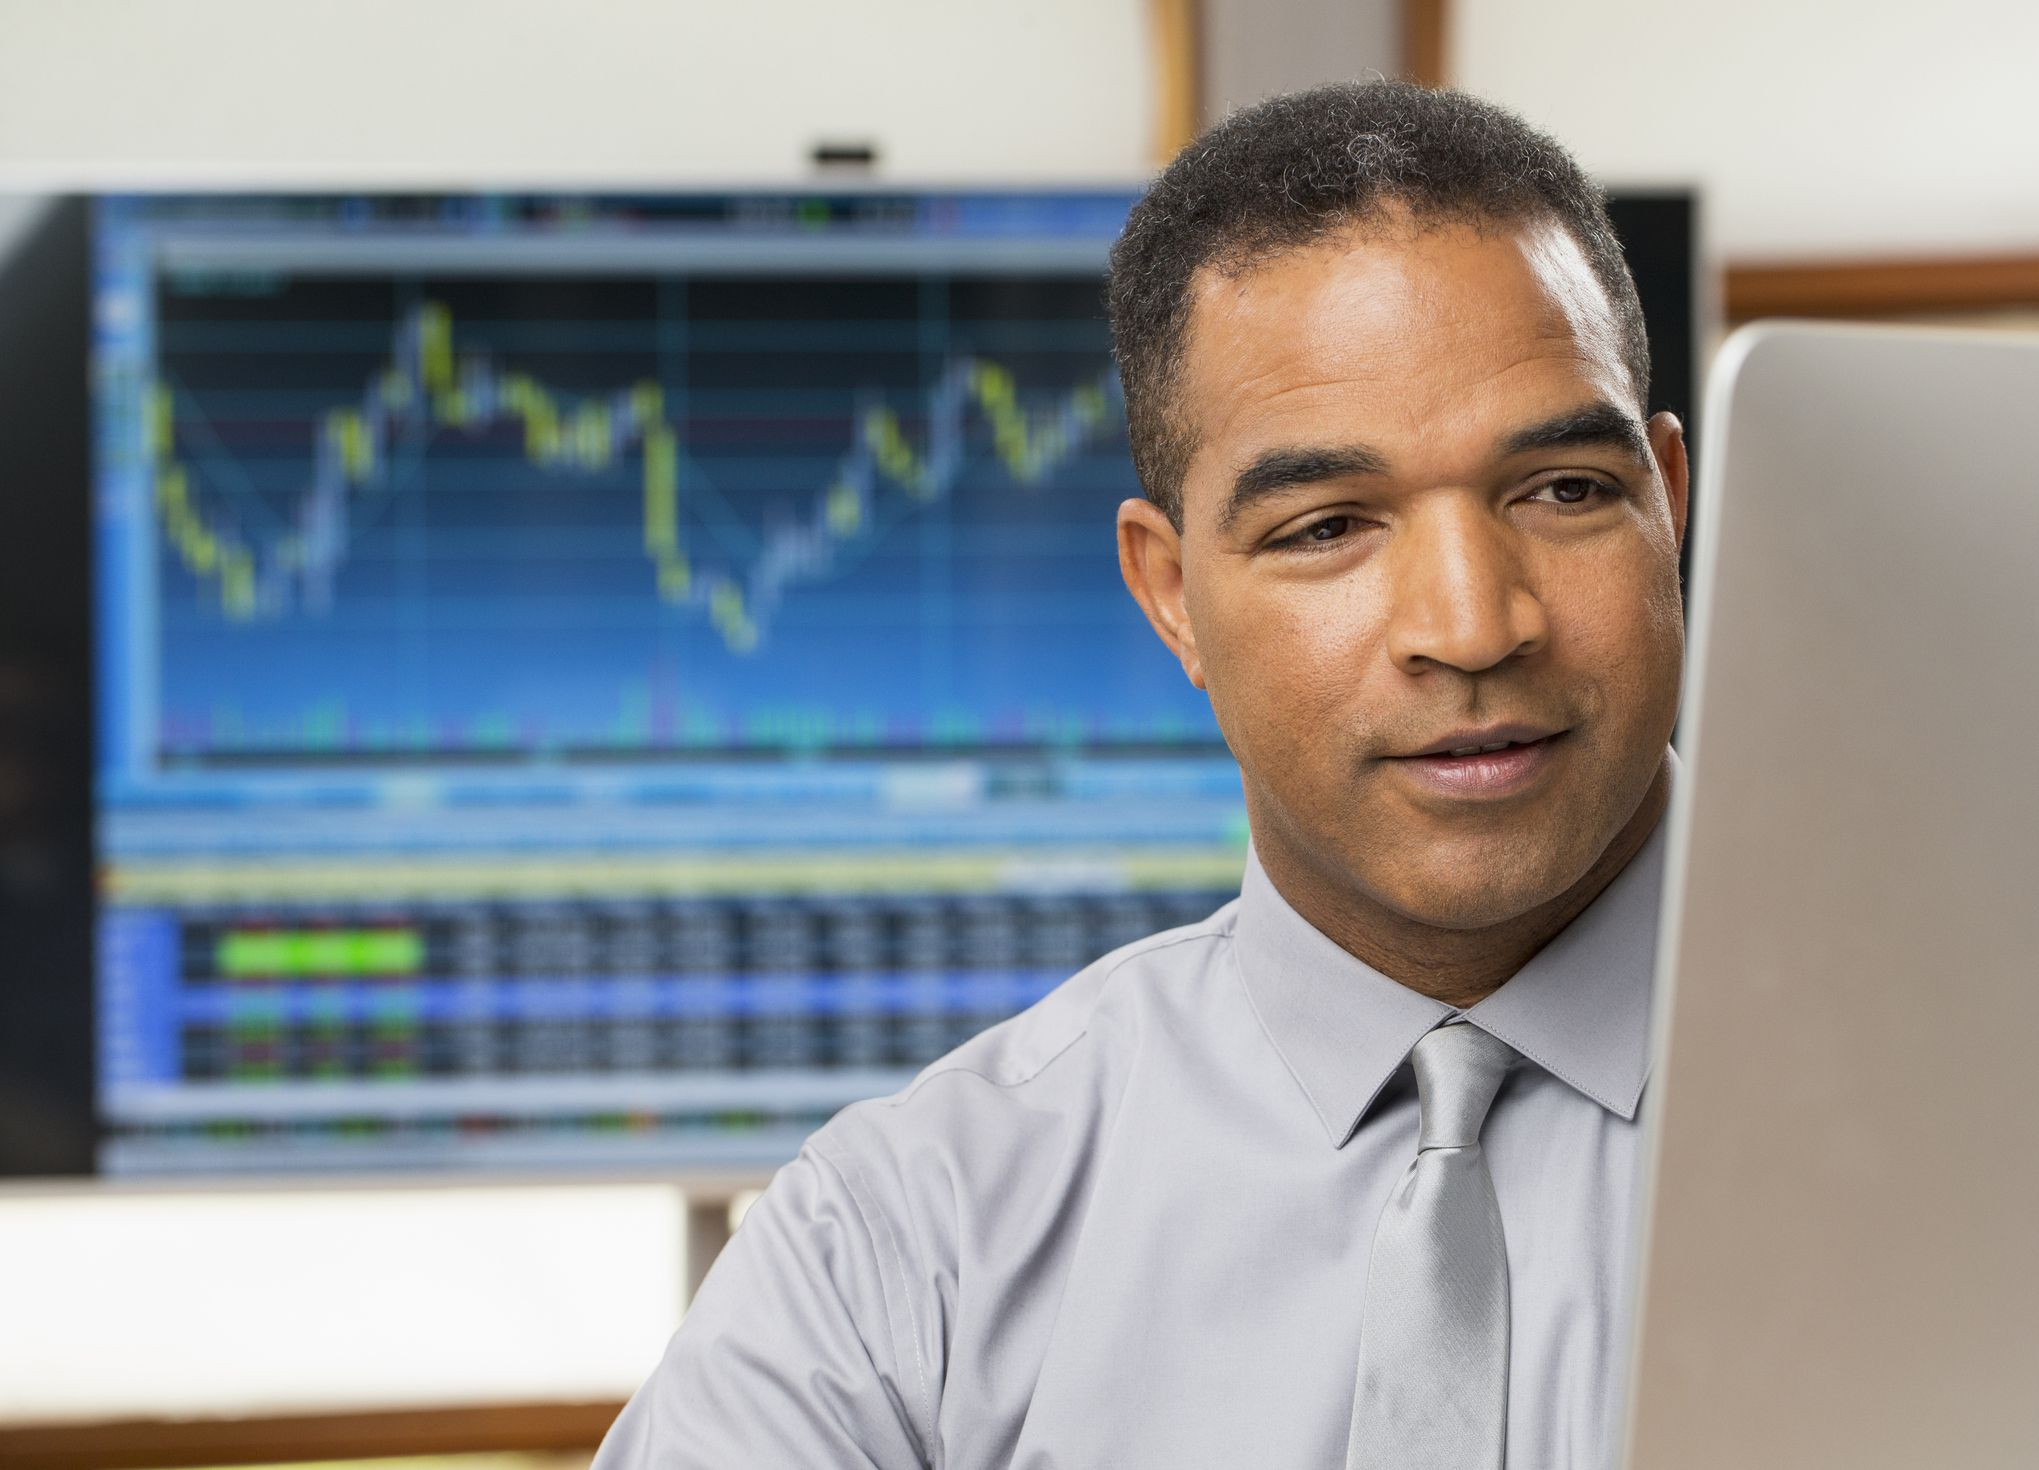 best time to day trade the usdjpy forex pair trading the nfp report 57a0e19a5f9b589aa9e9cb7a best time